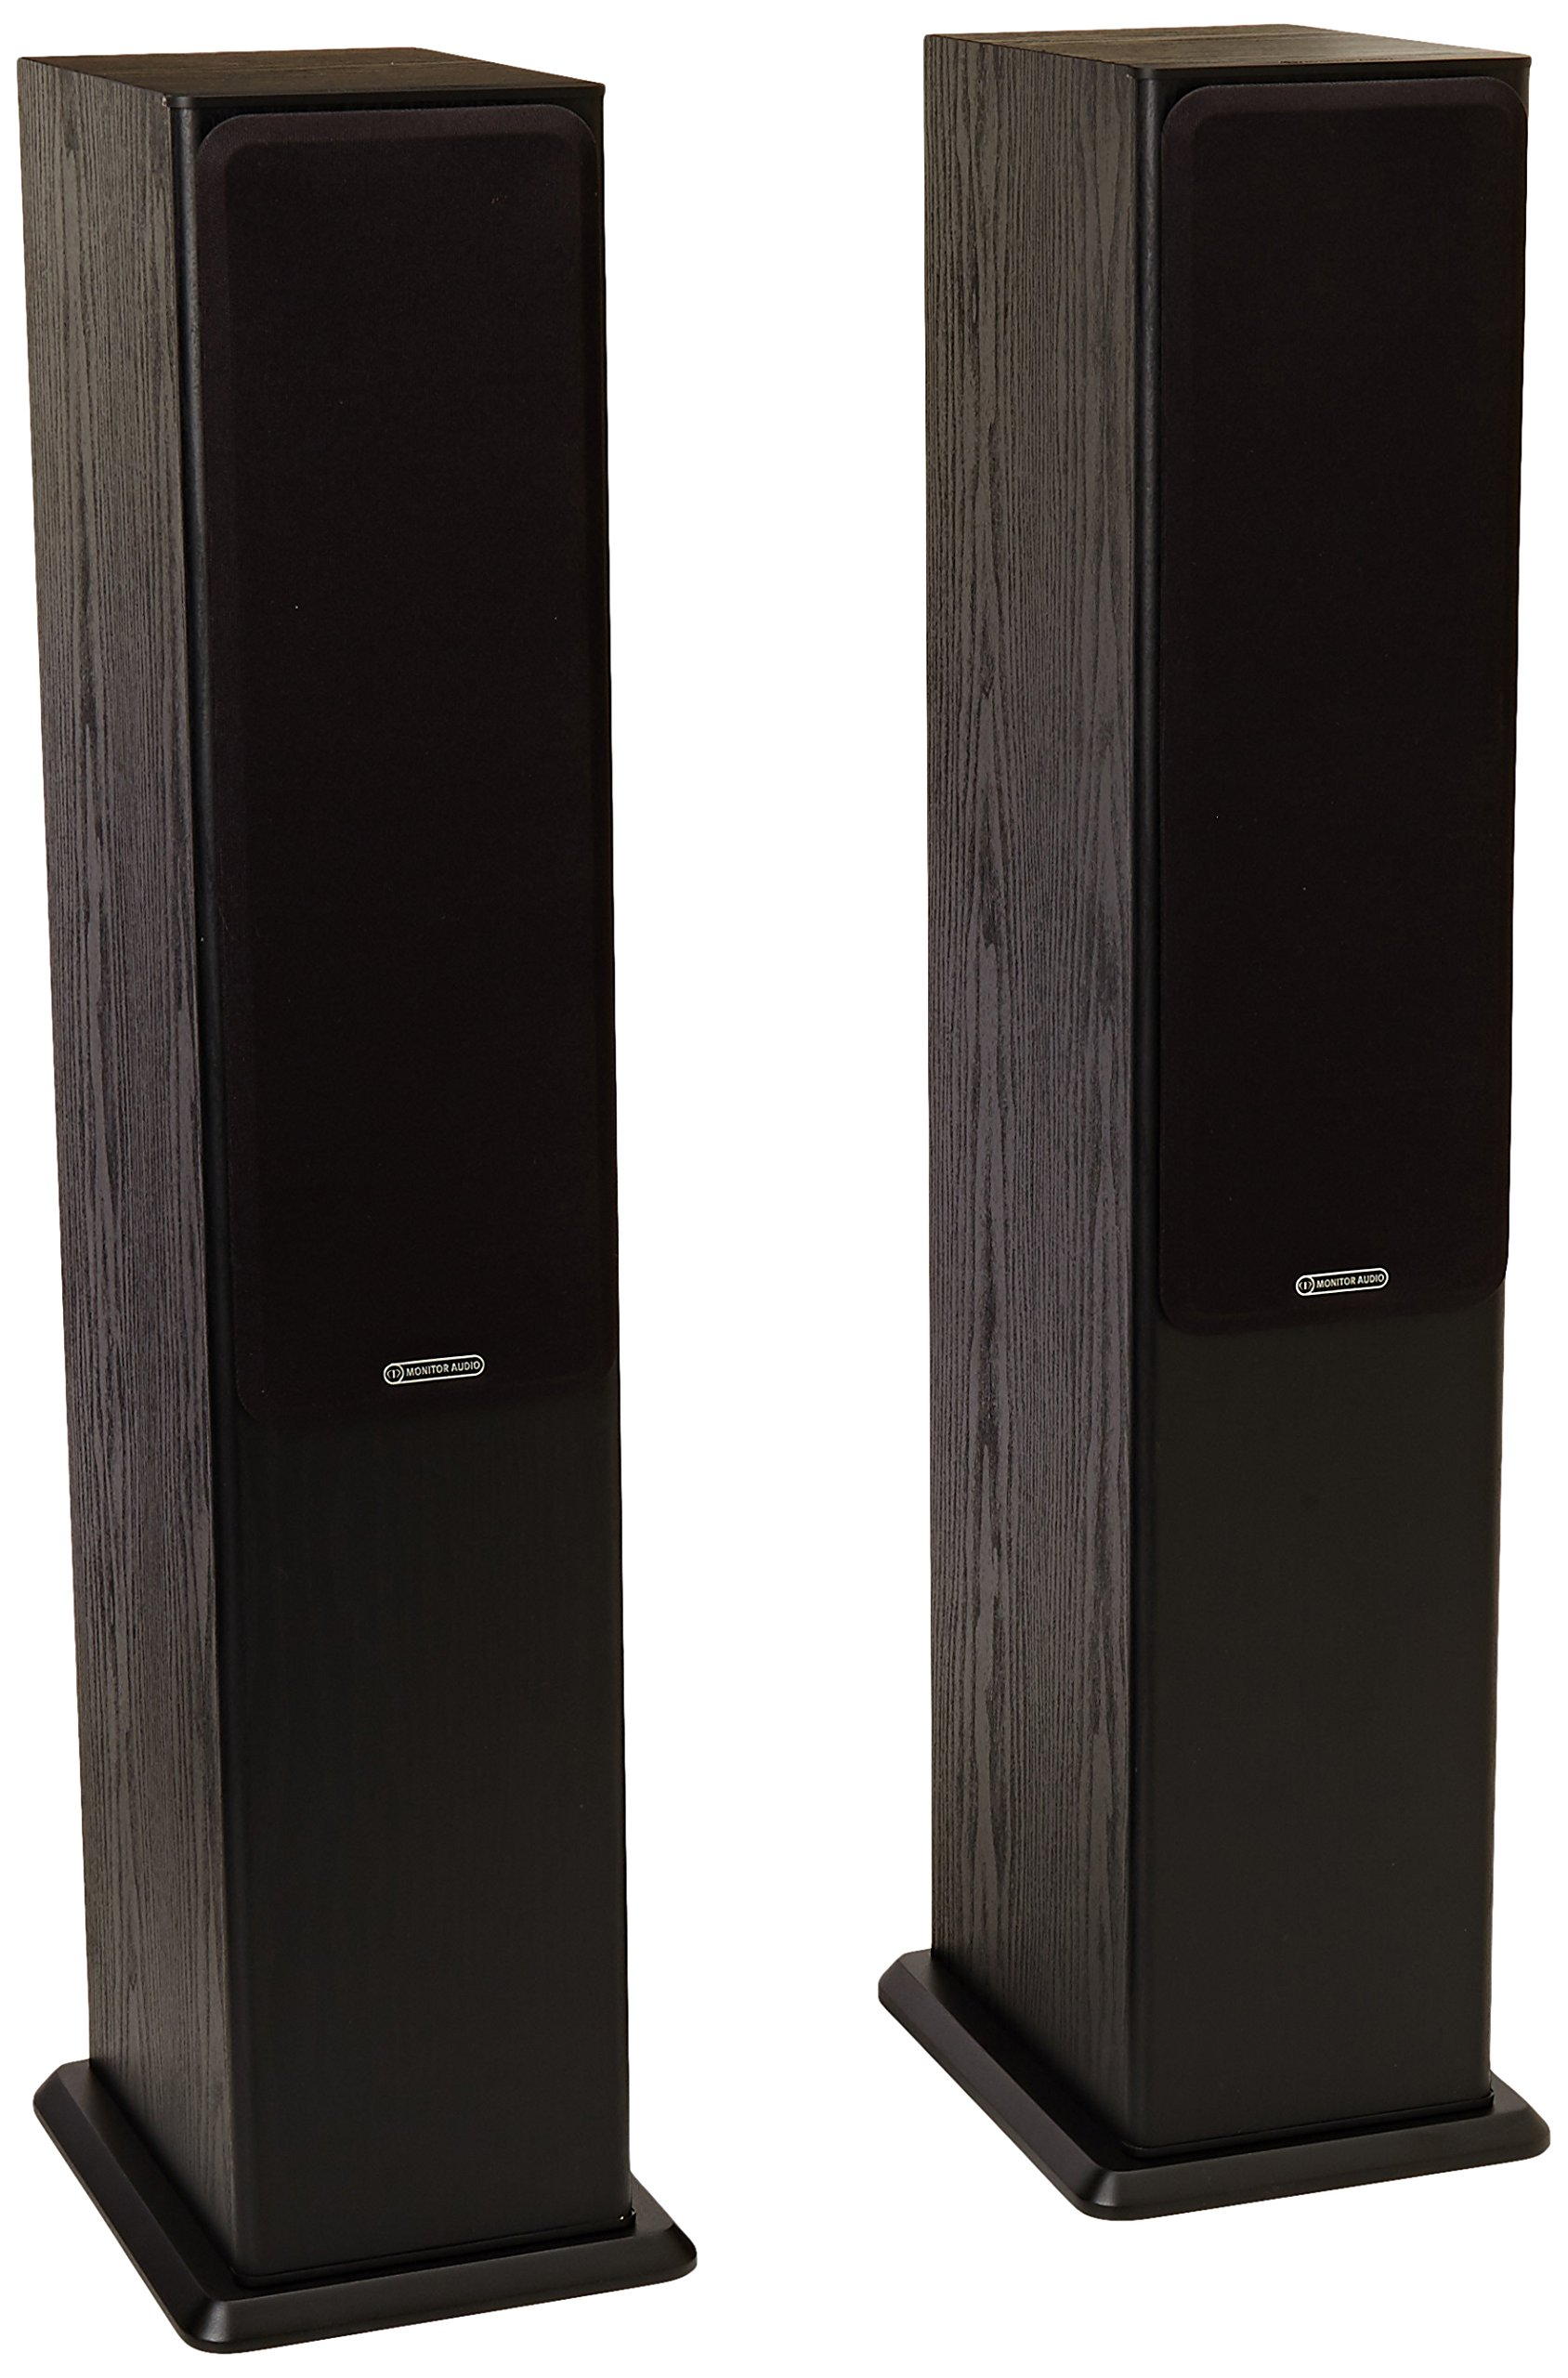 Monitor Audio Bronze Series 5 2 1/2 Way Floorstanding Speaker - Each - Black Oak by Monitor Audio